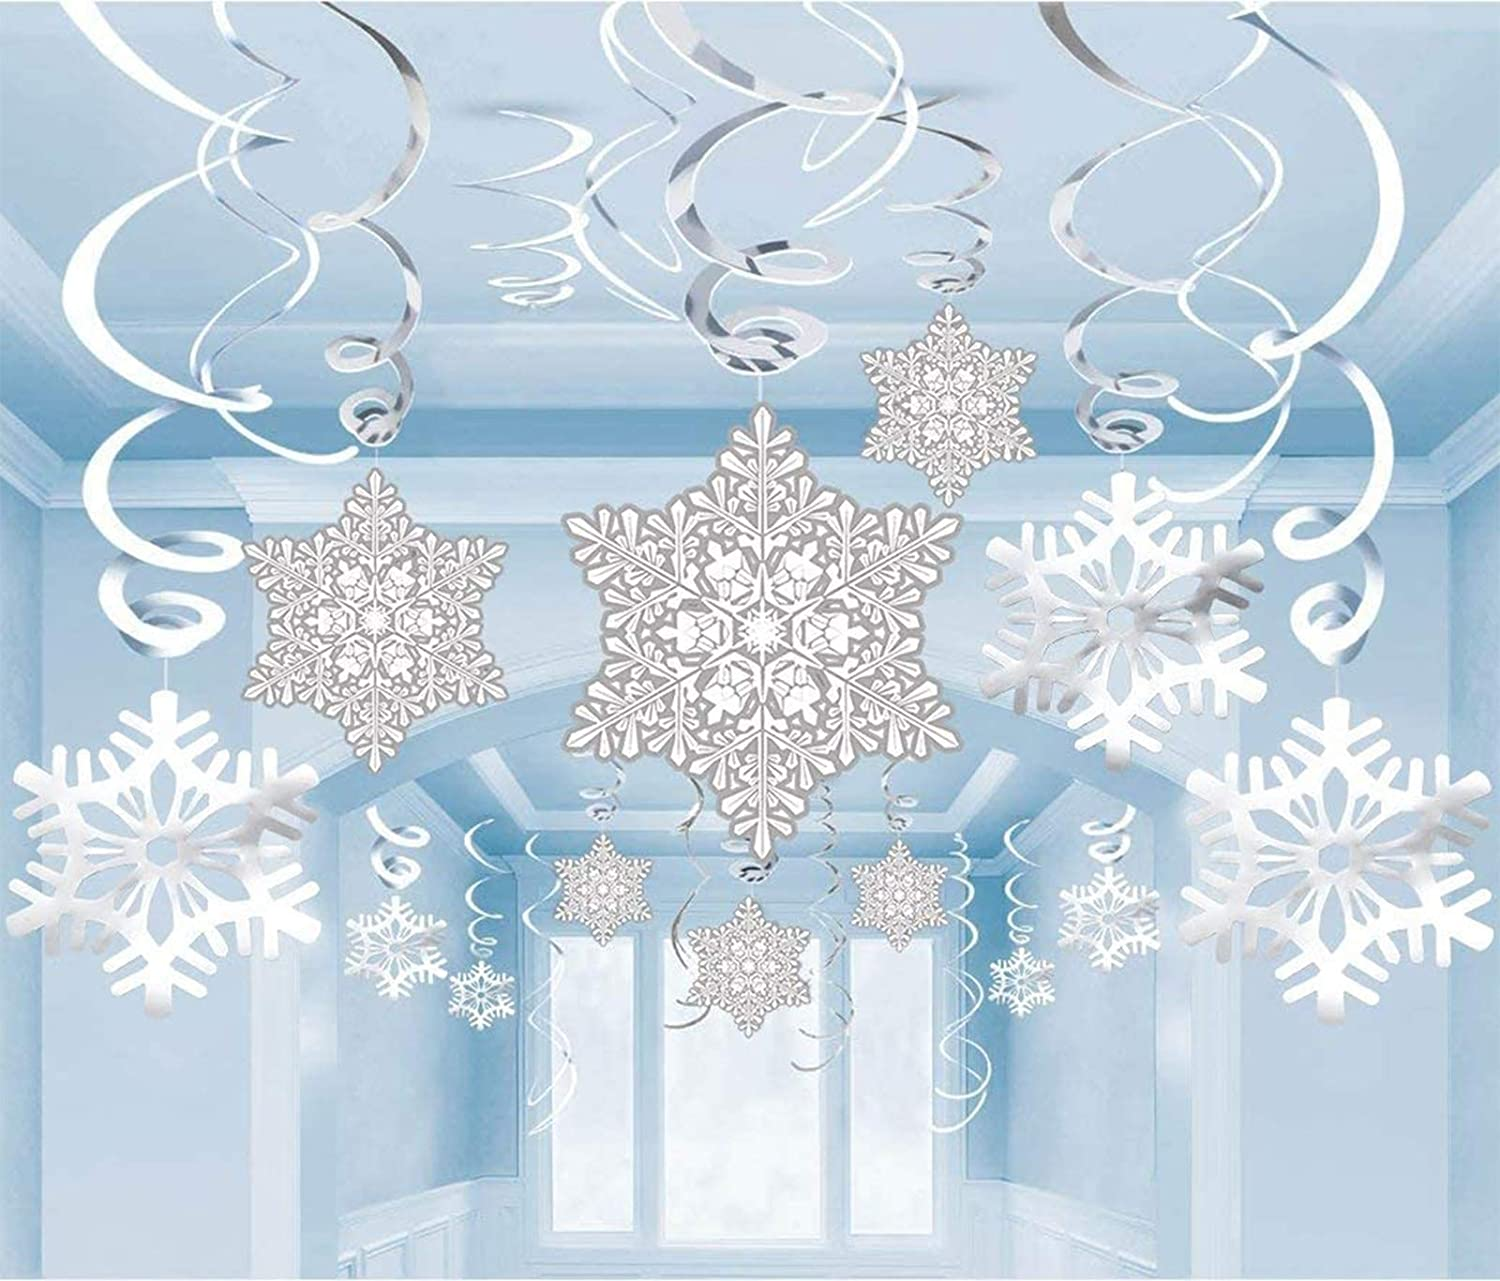 Moon Boat 40Ct Christmas free shipping Snowflake - Swirl favorite W Decorations Hanging